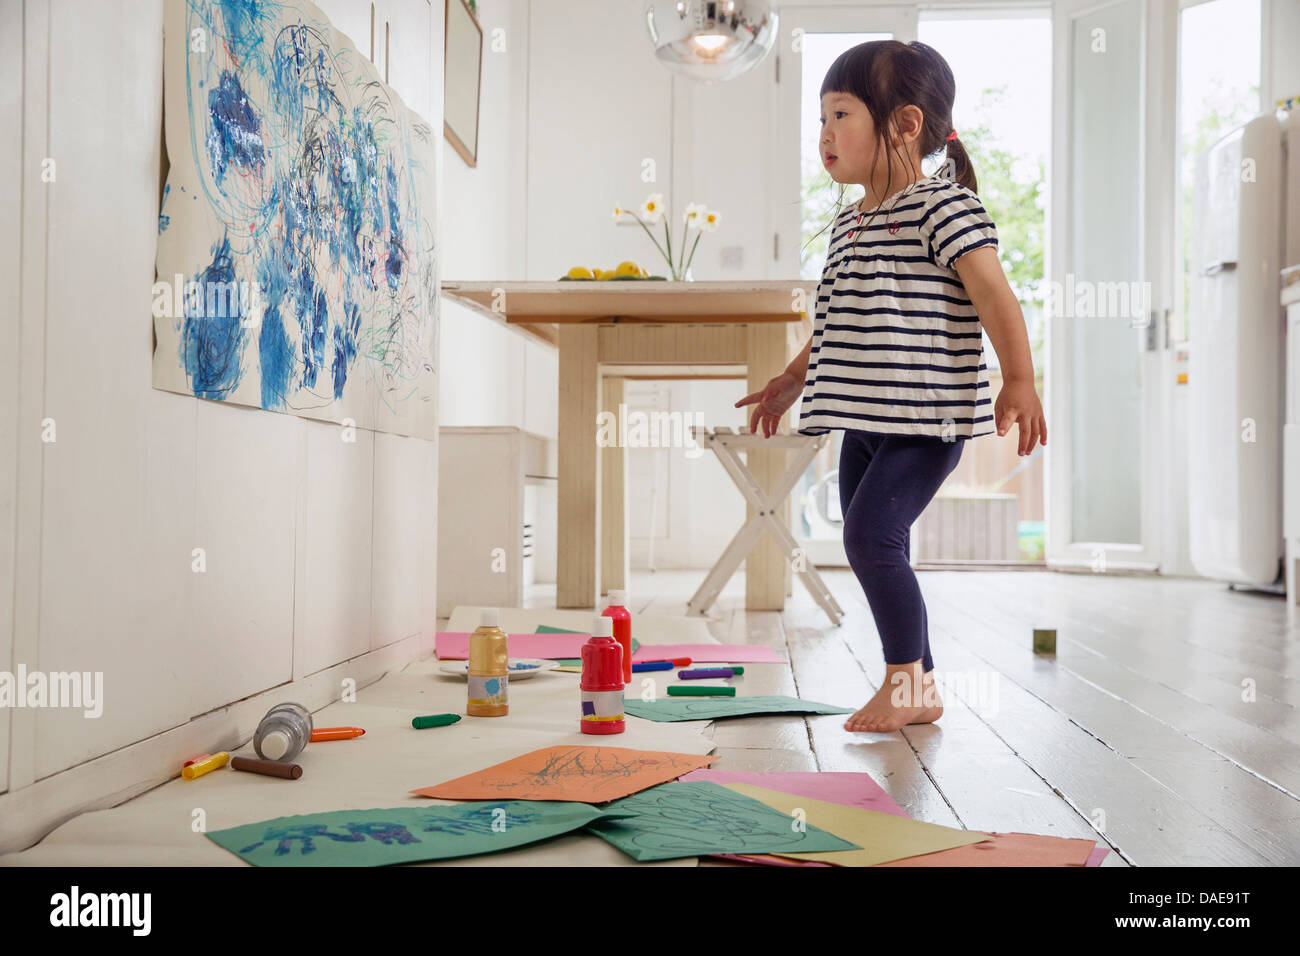 Female toddler inspecting her painting and drawing - Stock Image